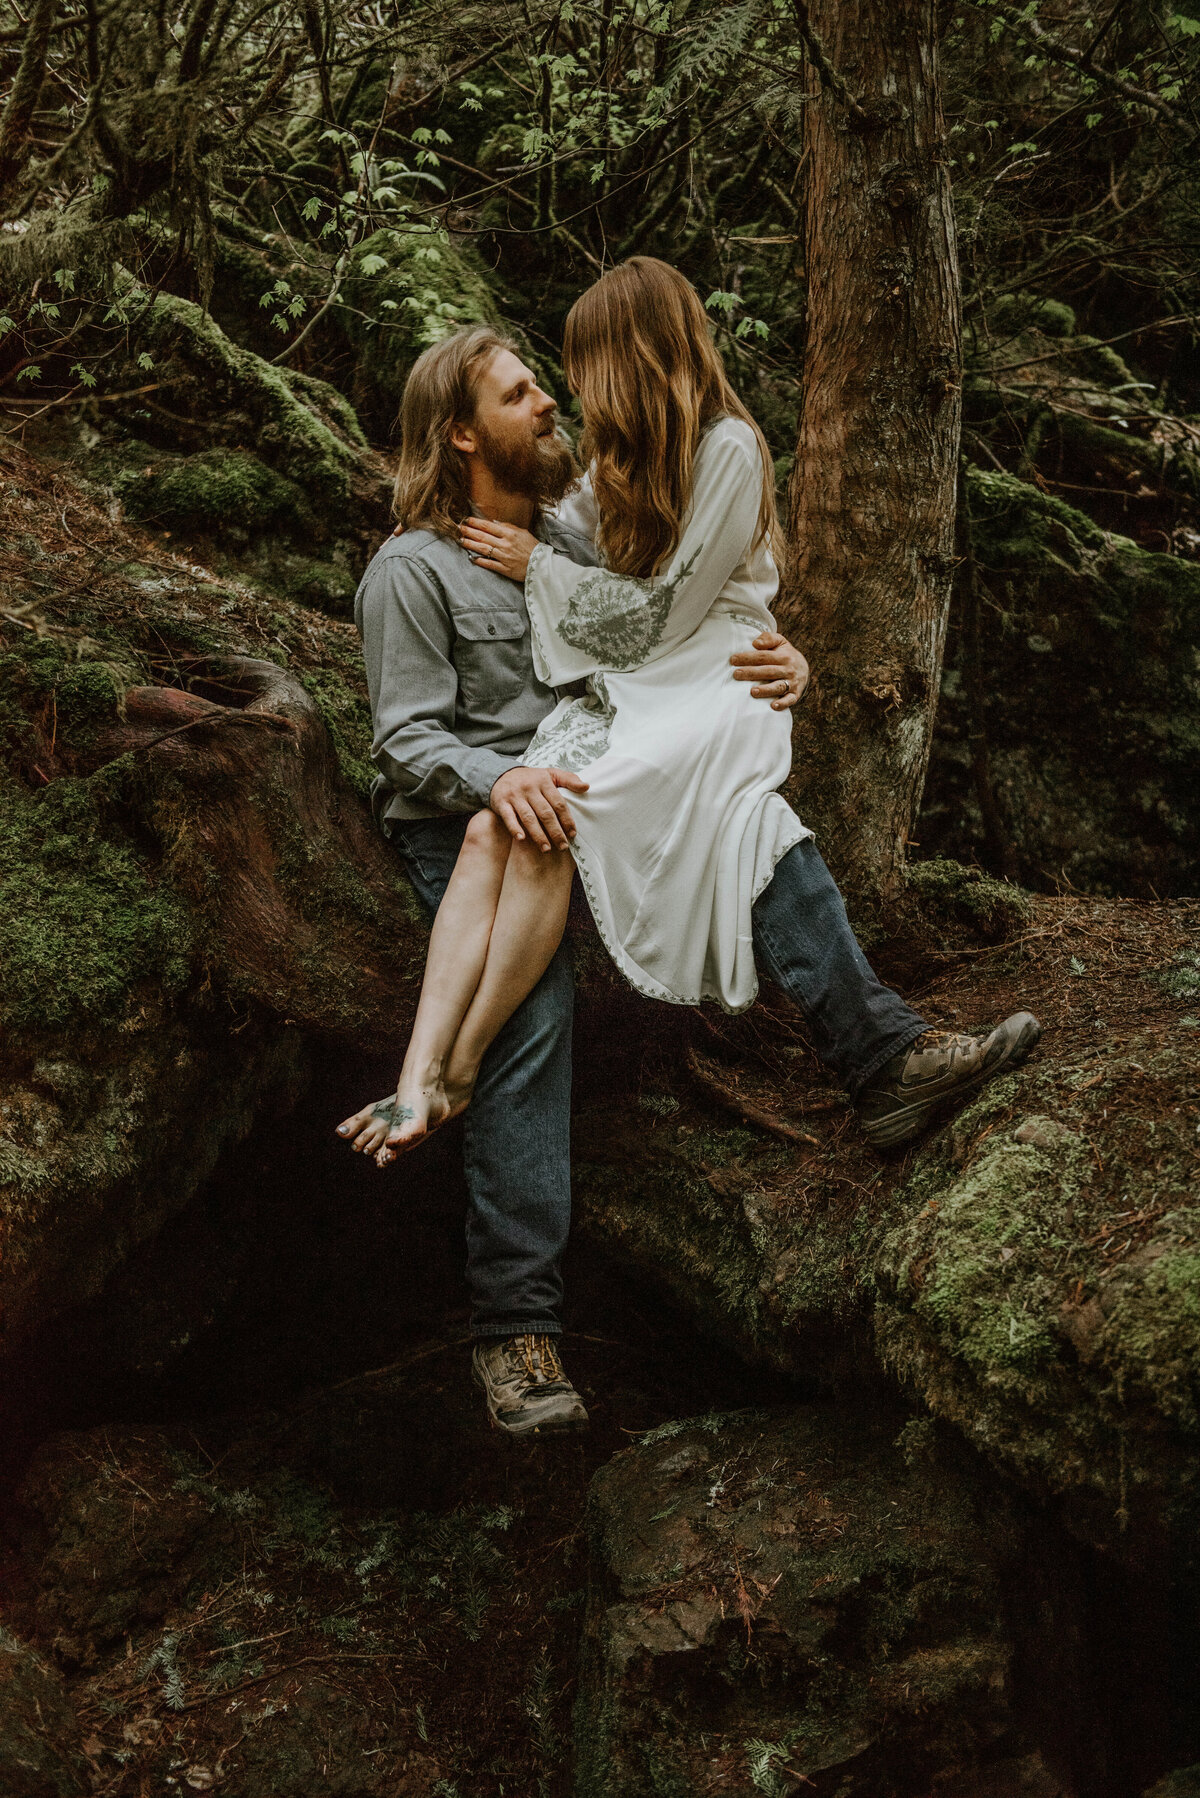 sahalie-falls-summer-oregon-photoshoot-adventure-photographer-bend-couple-forest-outfits-elopement-wedding8252